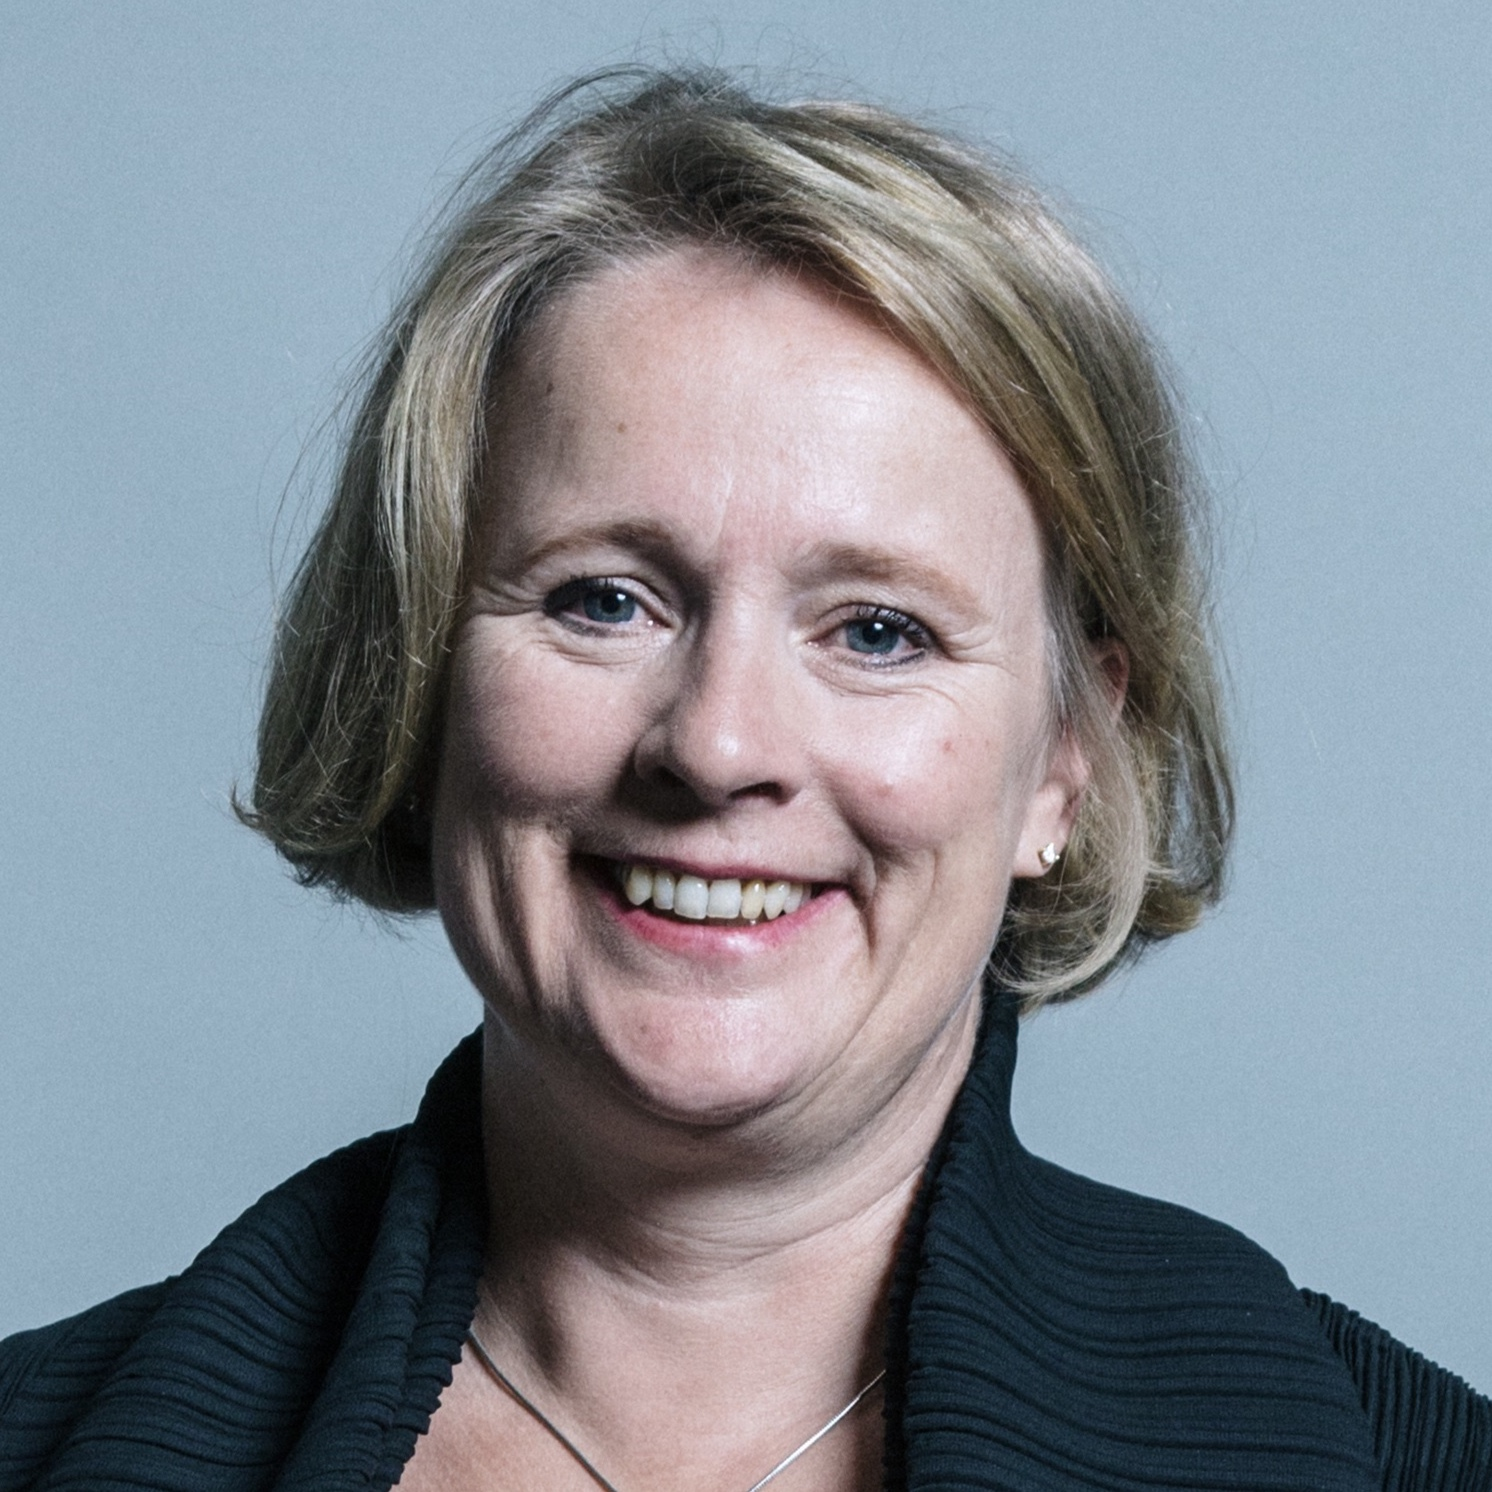 Vicky Ford MP on plastic pollution in developing countries -